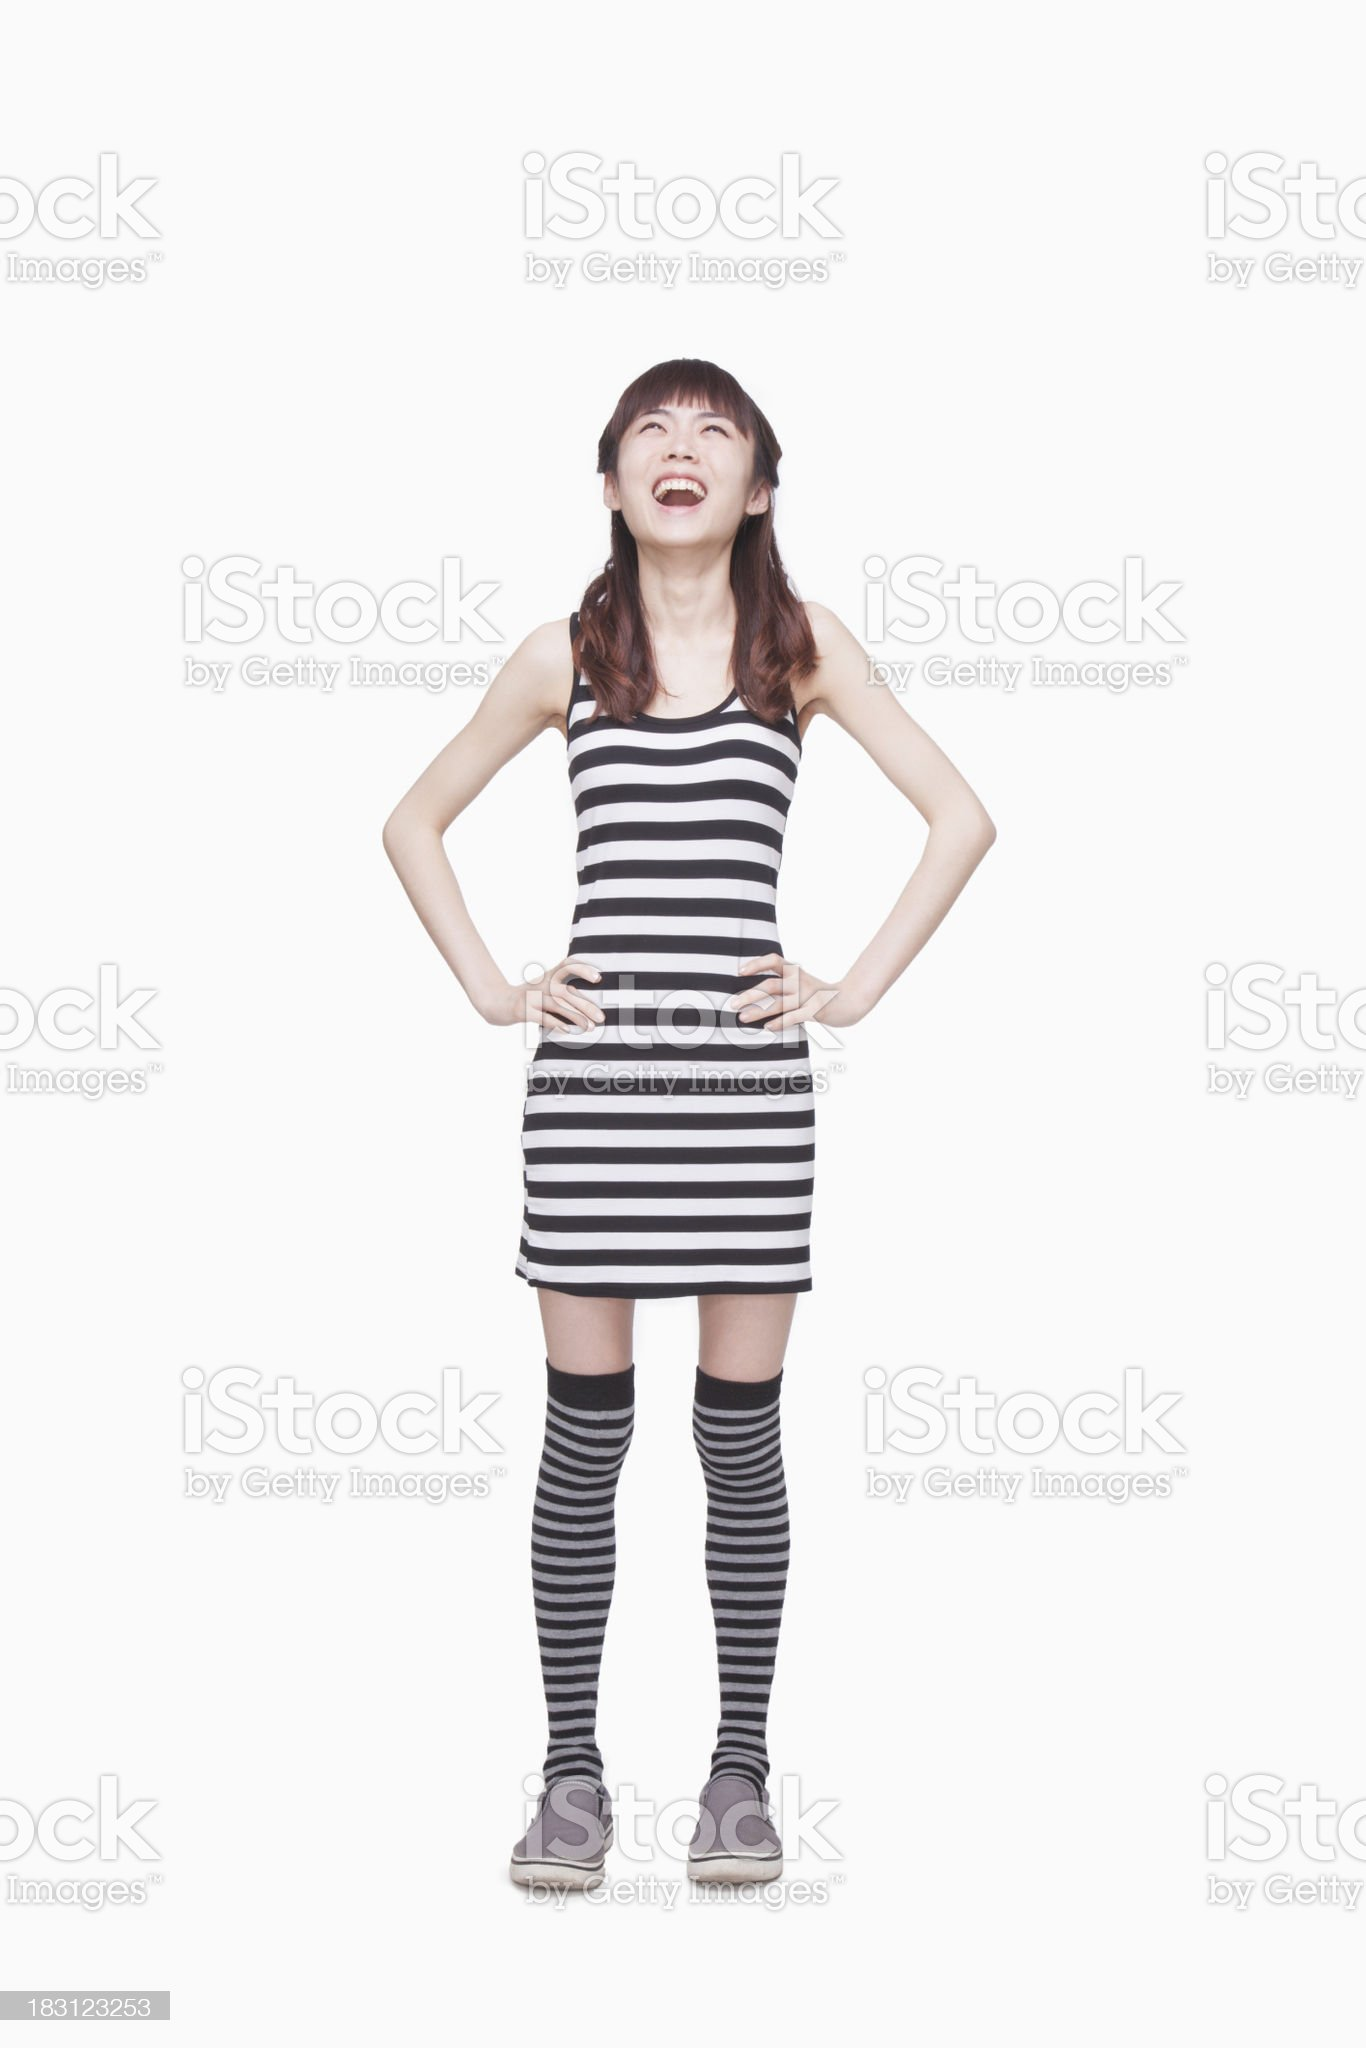 Young Woman smiling looking up royalty-free stock photo